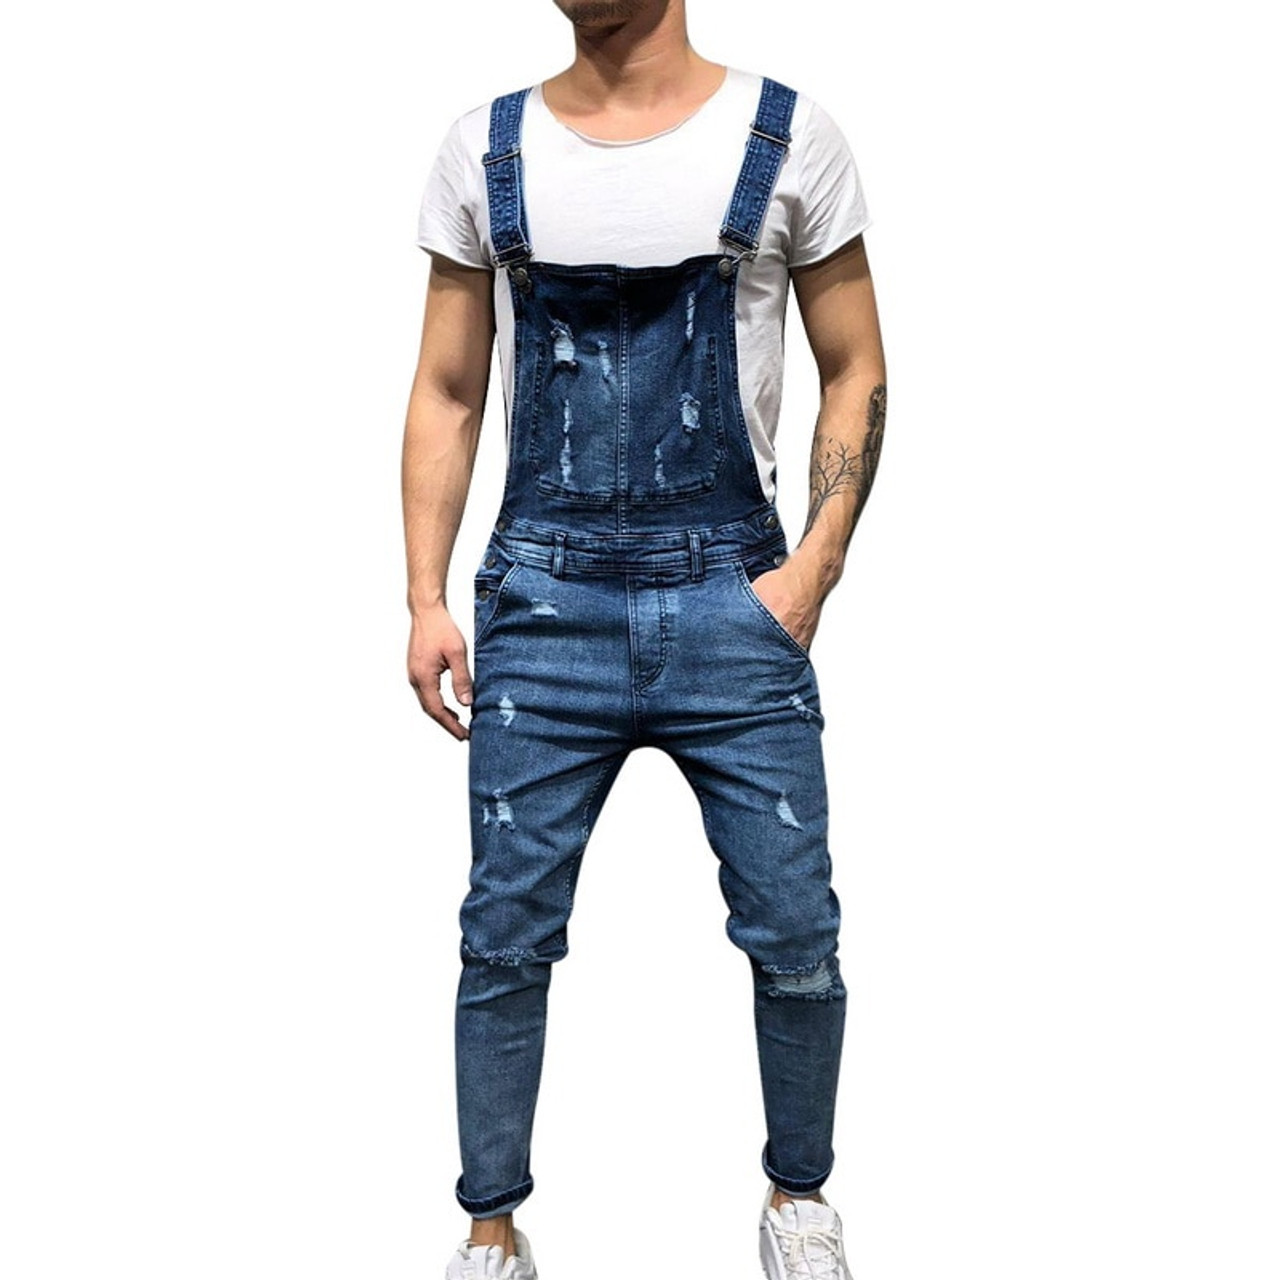 aa7648466ce WENYUJH 2019 Fashion Men s Ripped Jeans Jumpsuits Street Distressed Hole  Denim Bib Overalls For Man Suspender ...